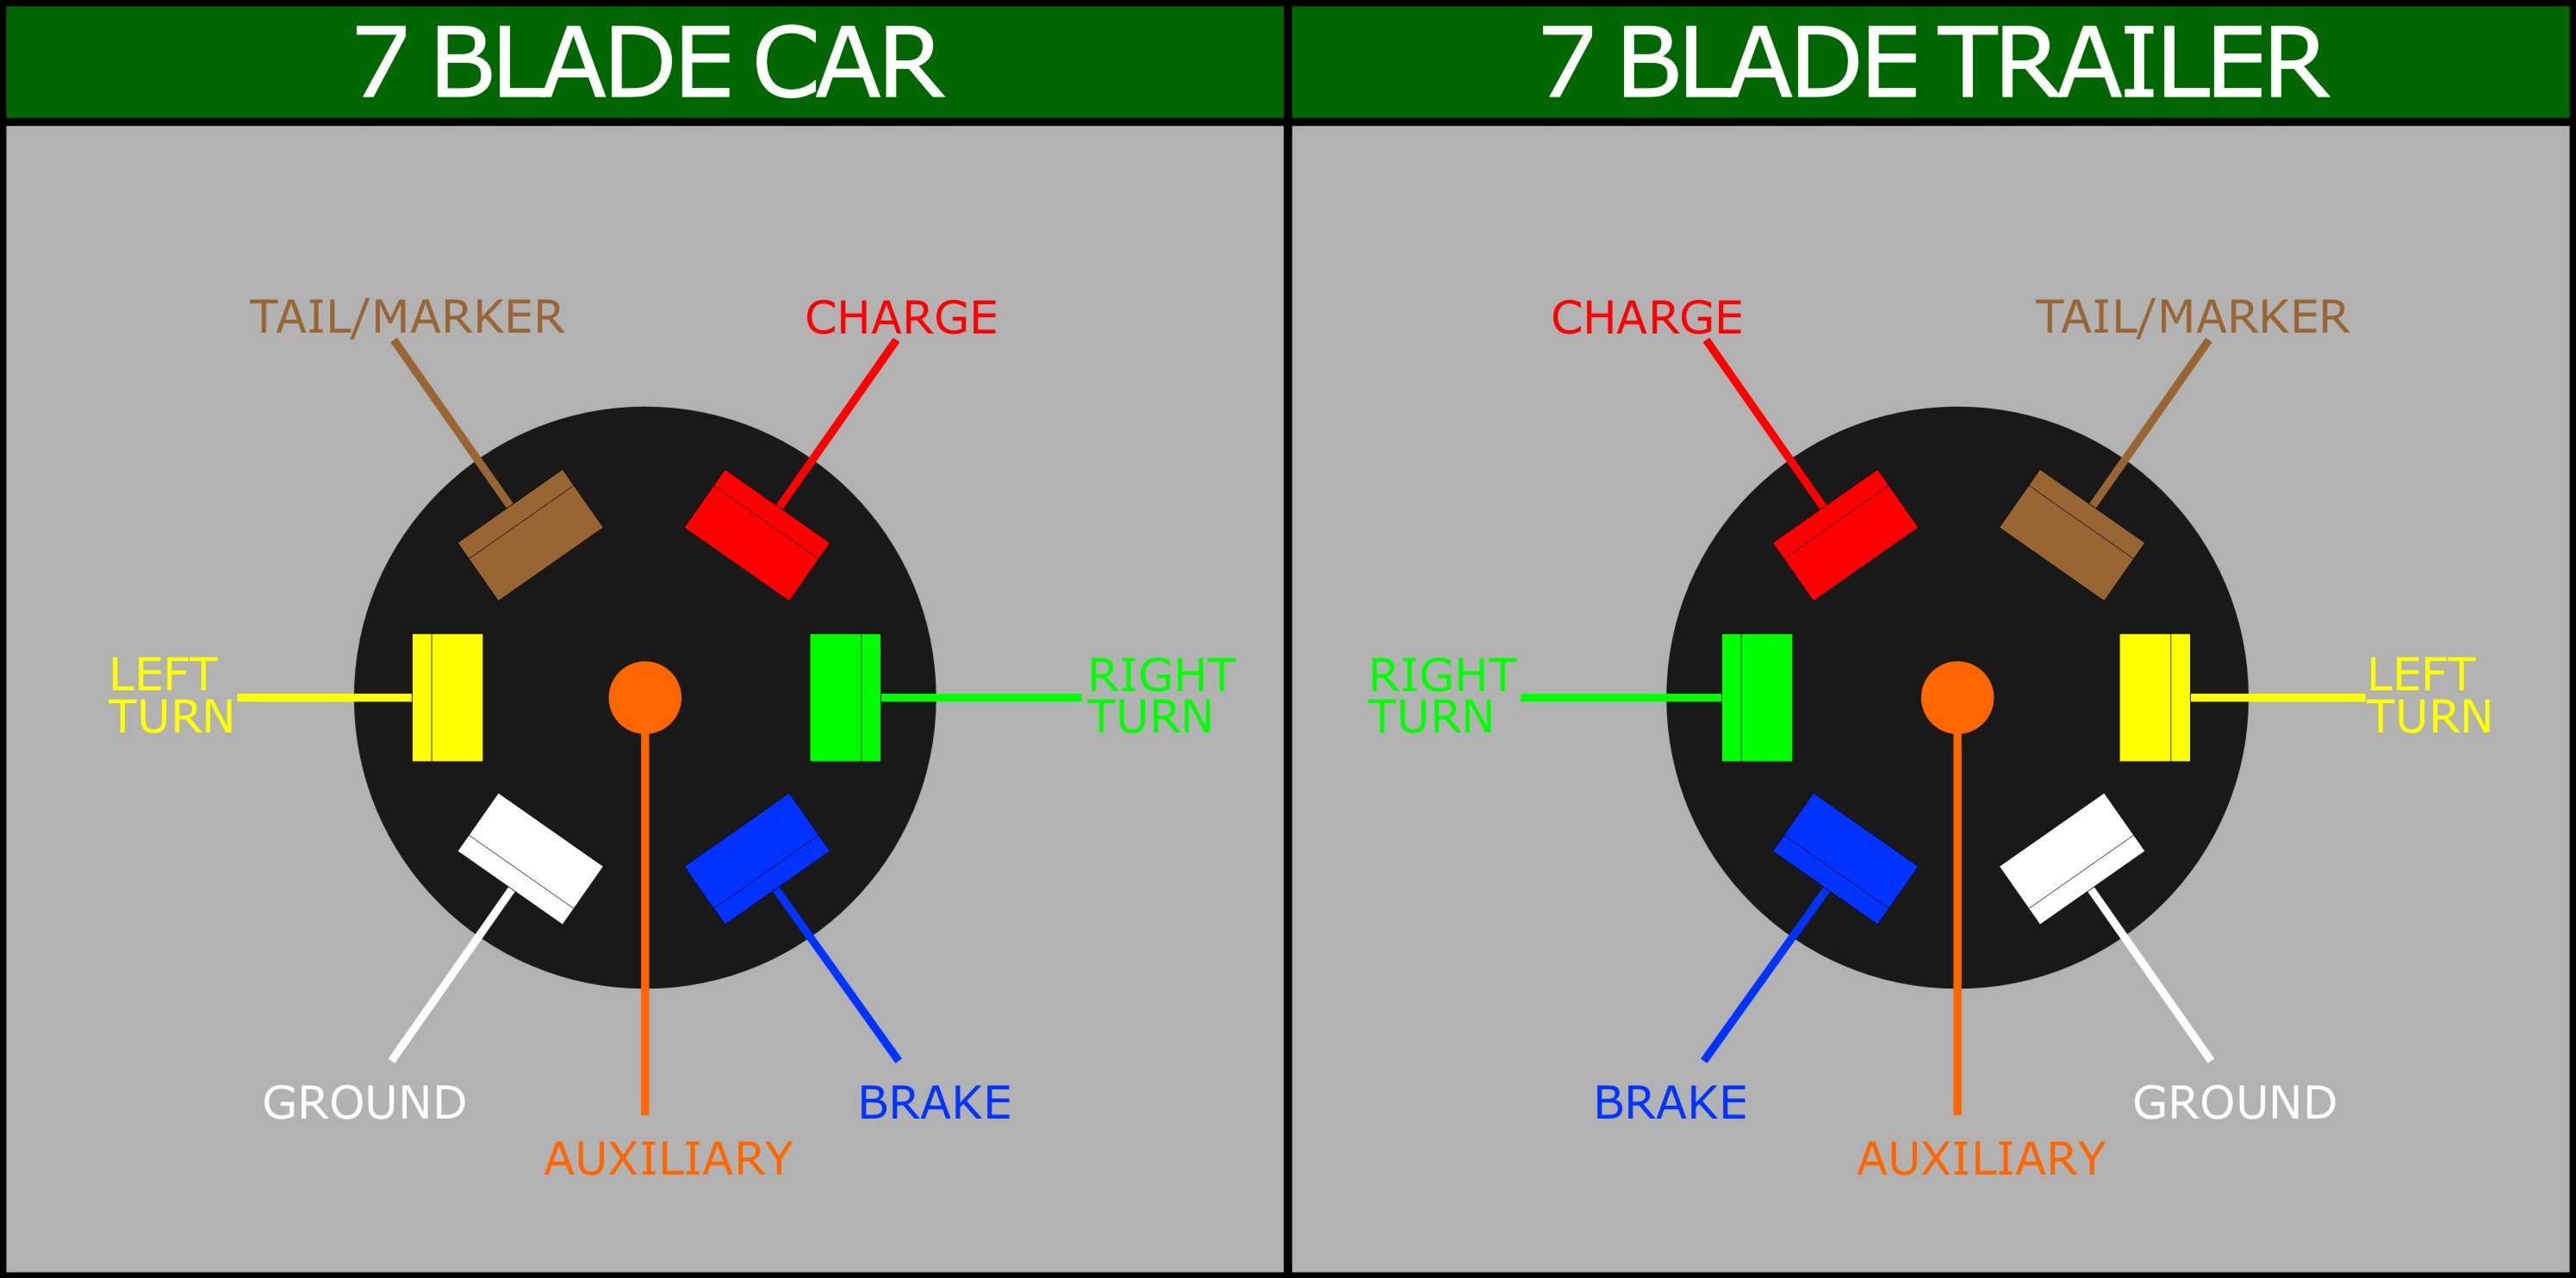 Wiring for 7 Blade Plug wiring a 7 blade trailer harness or plug Ford 7-Way Trailer Wiring Diagram at readyjetset.co